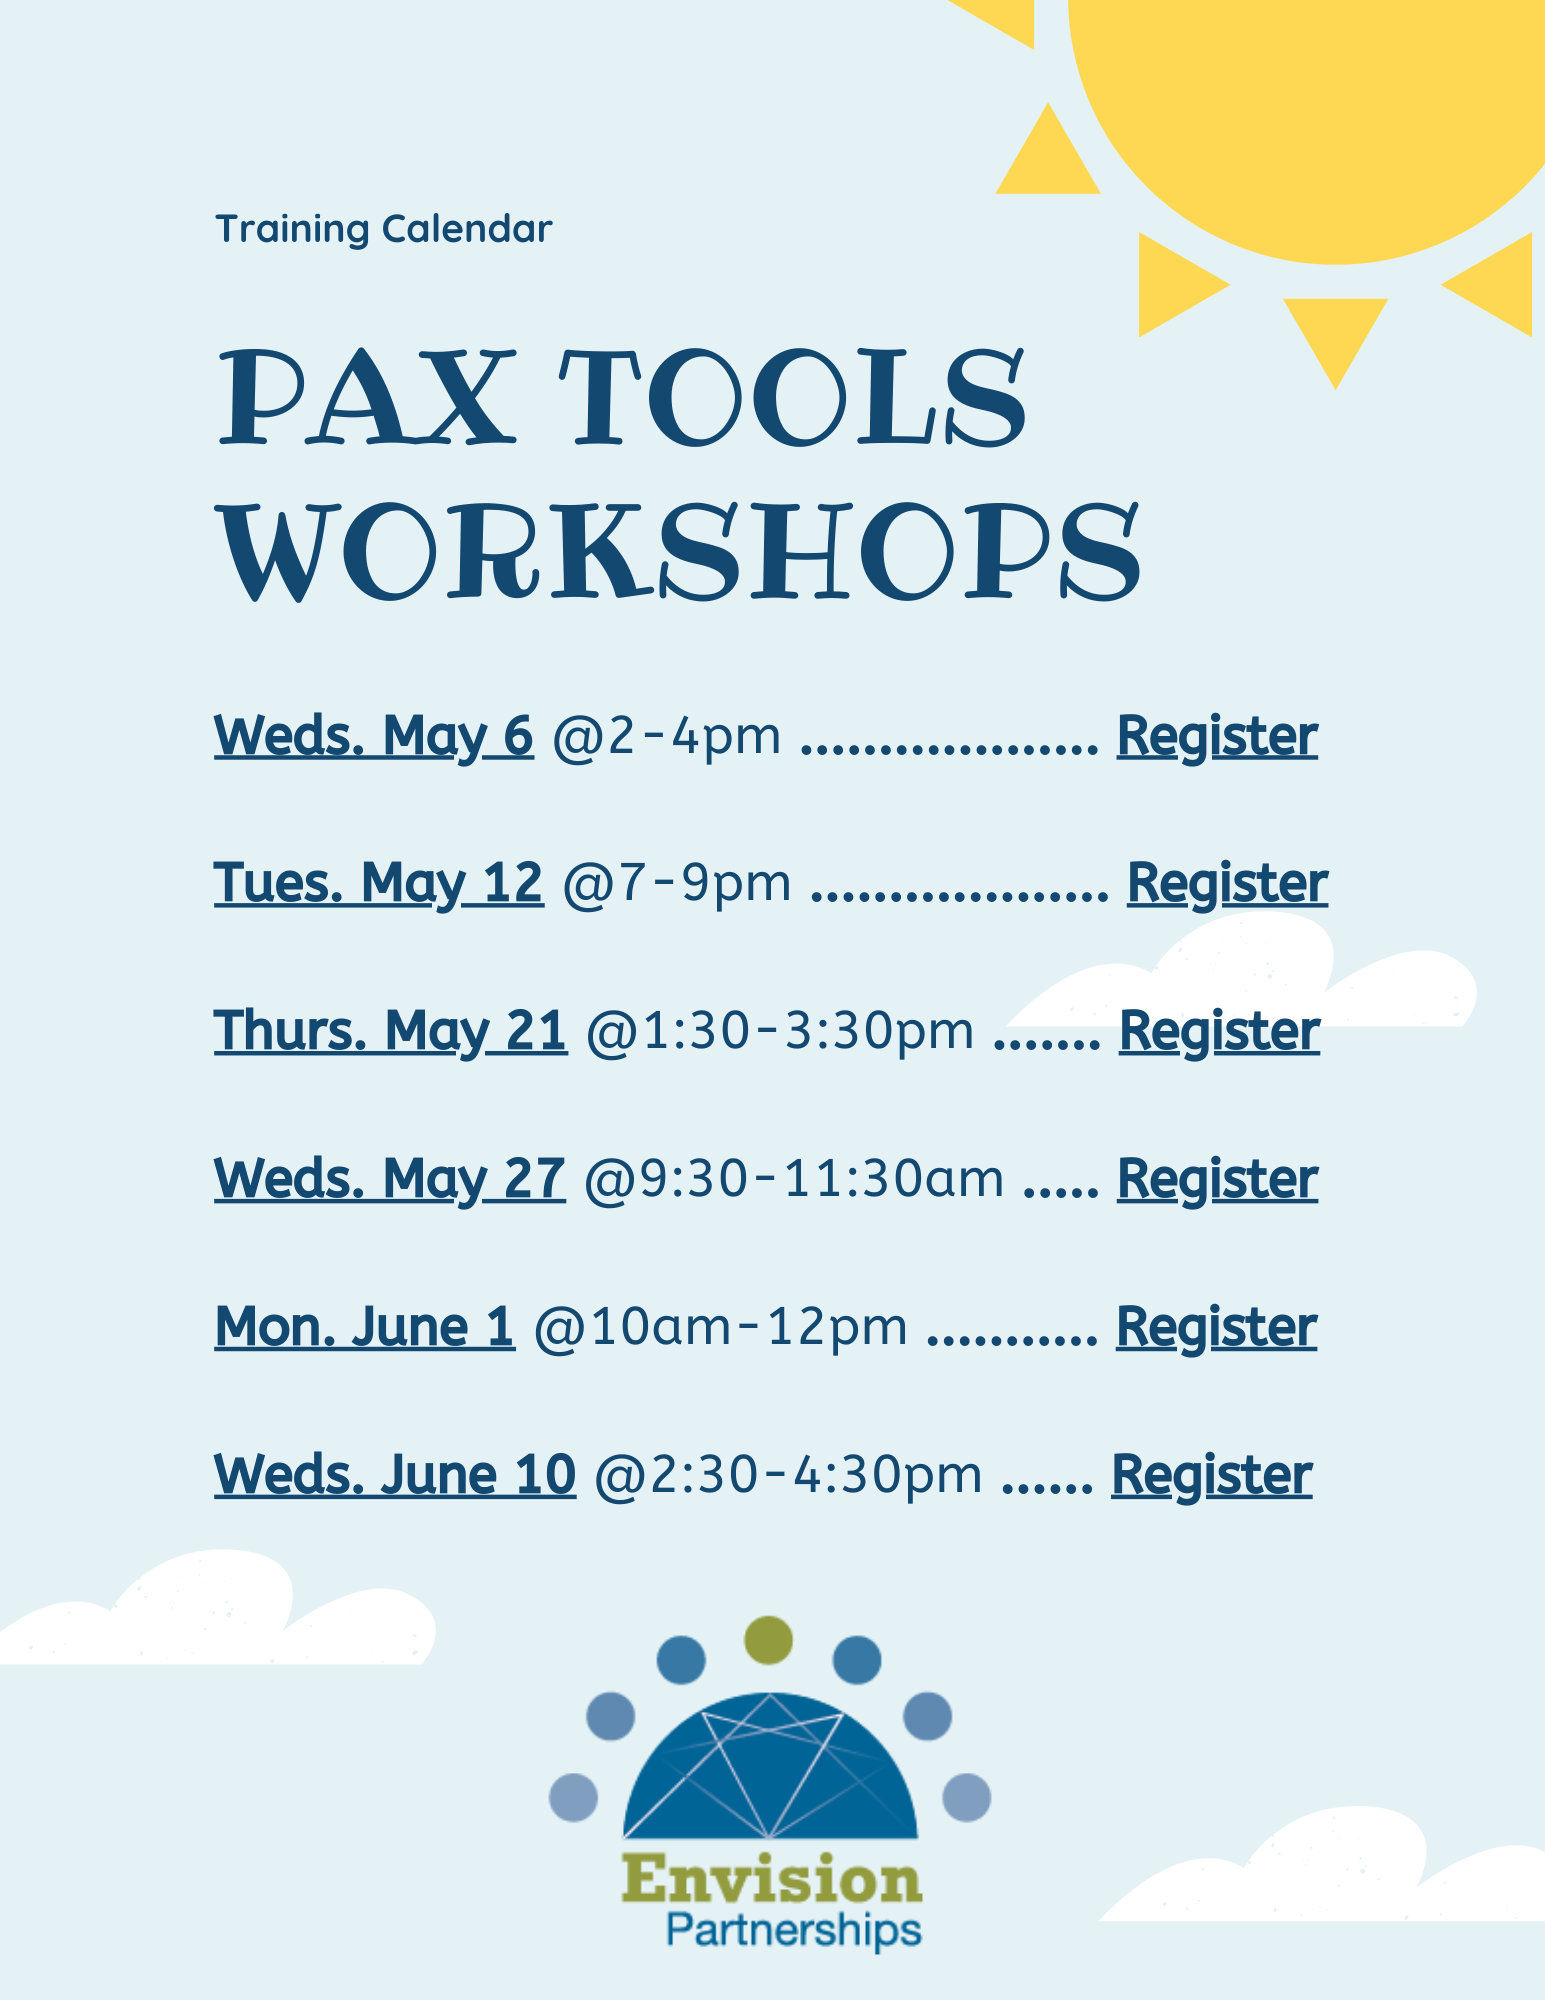 PAX Tools Workshop